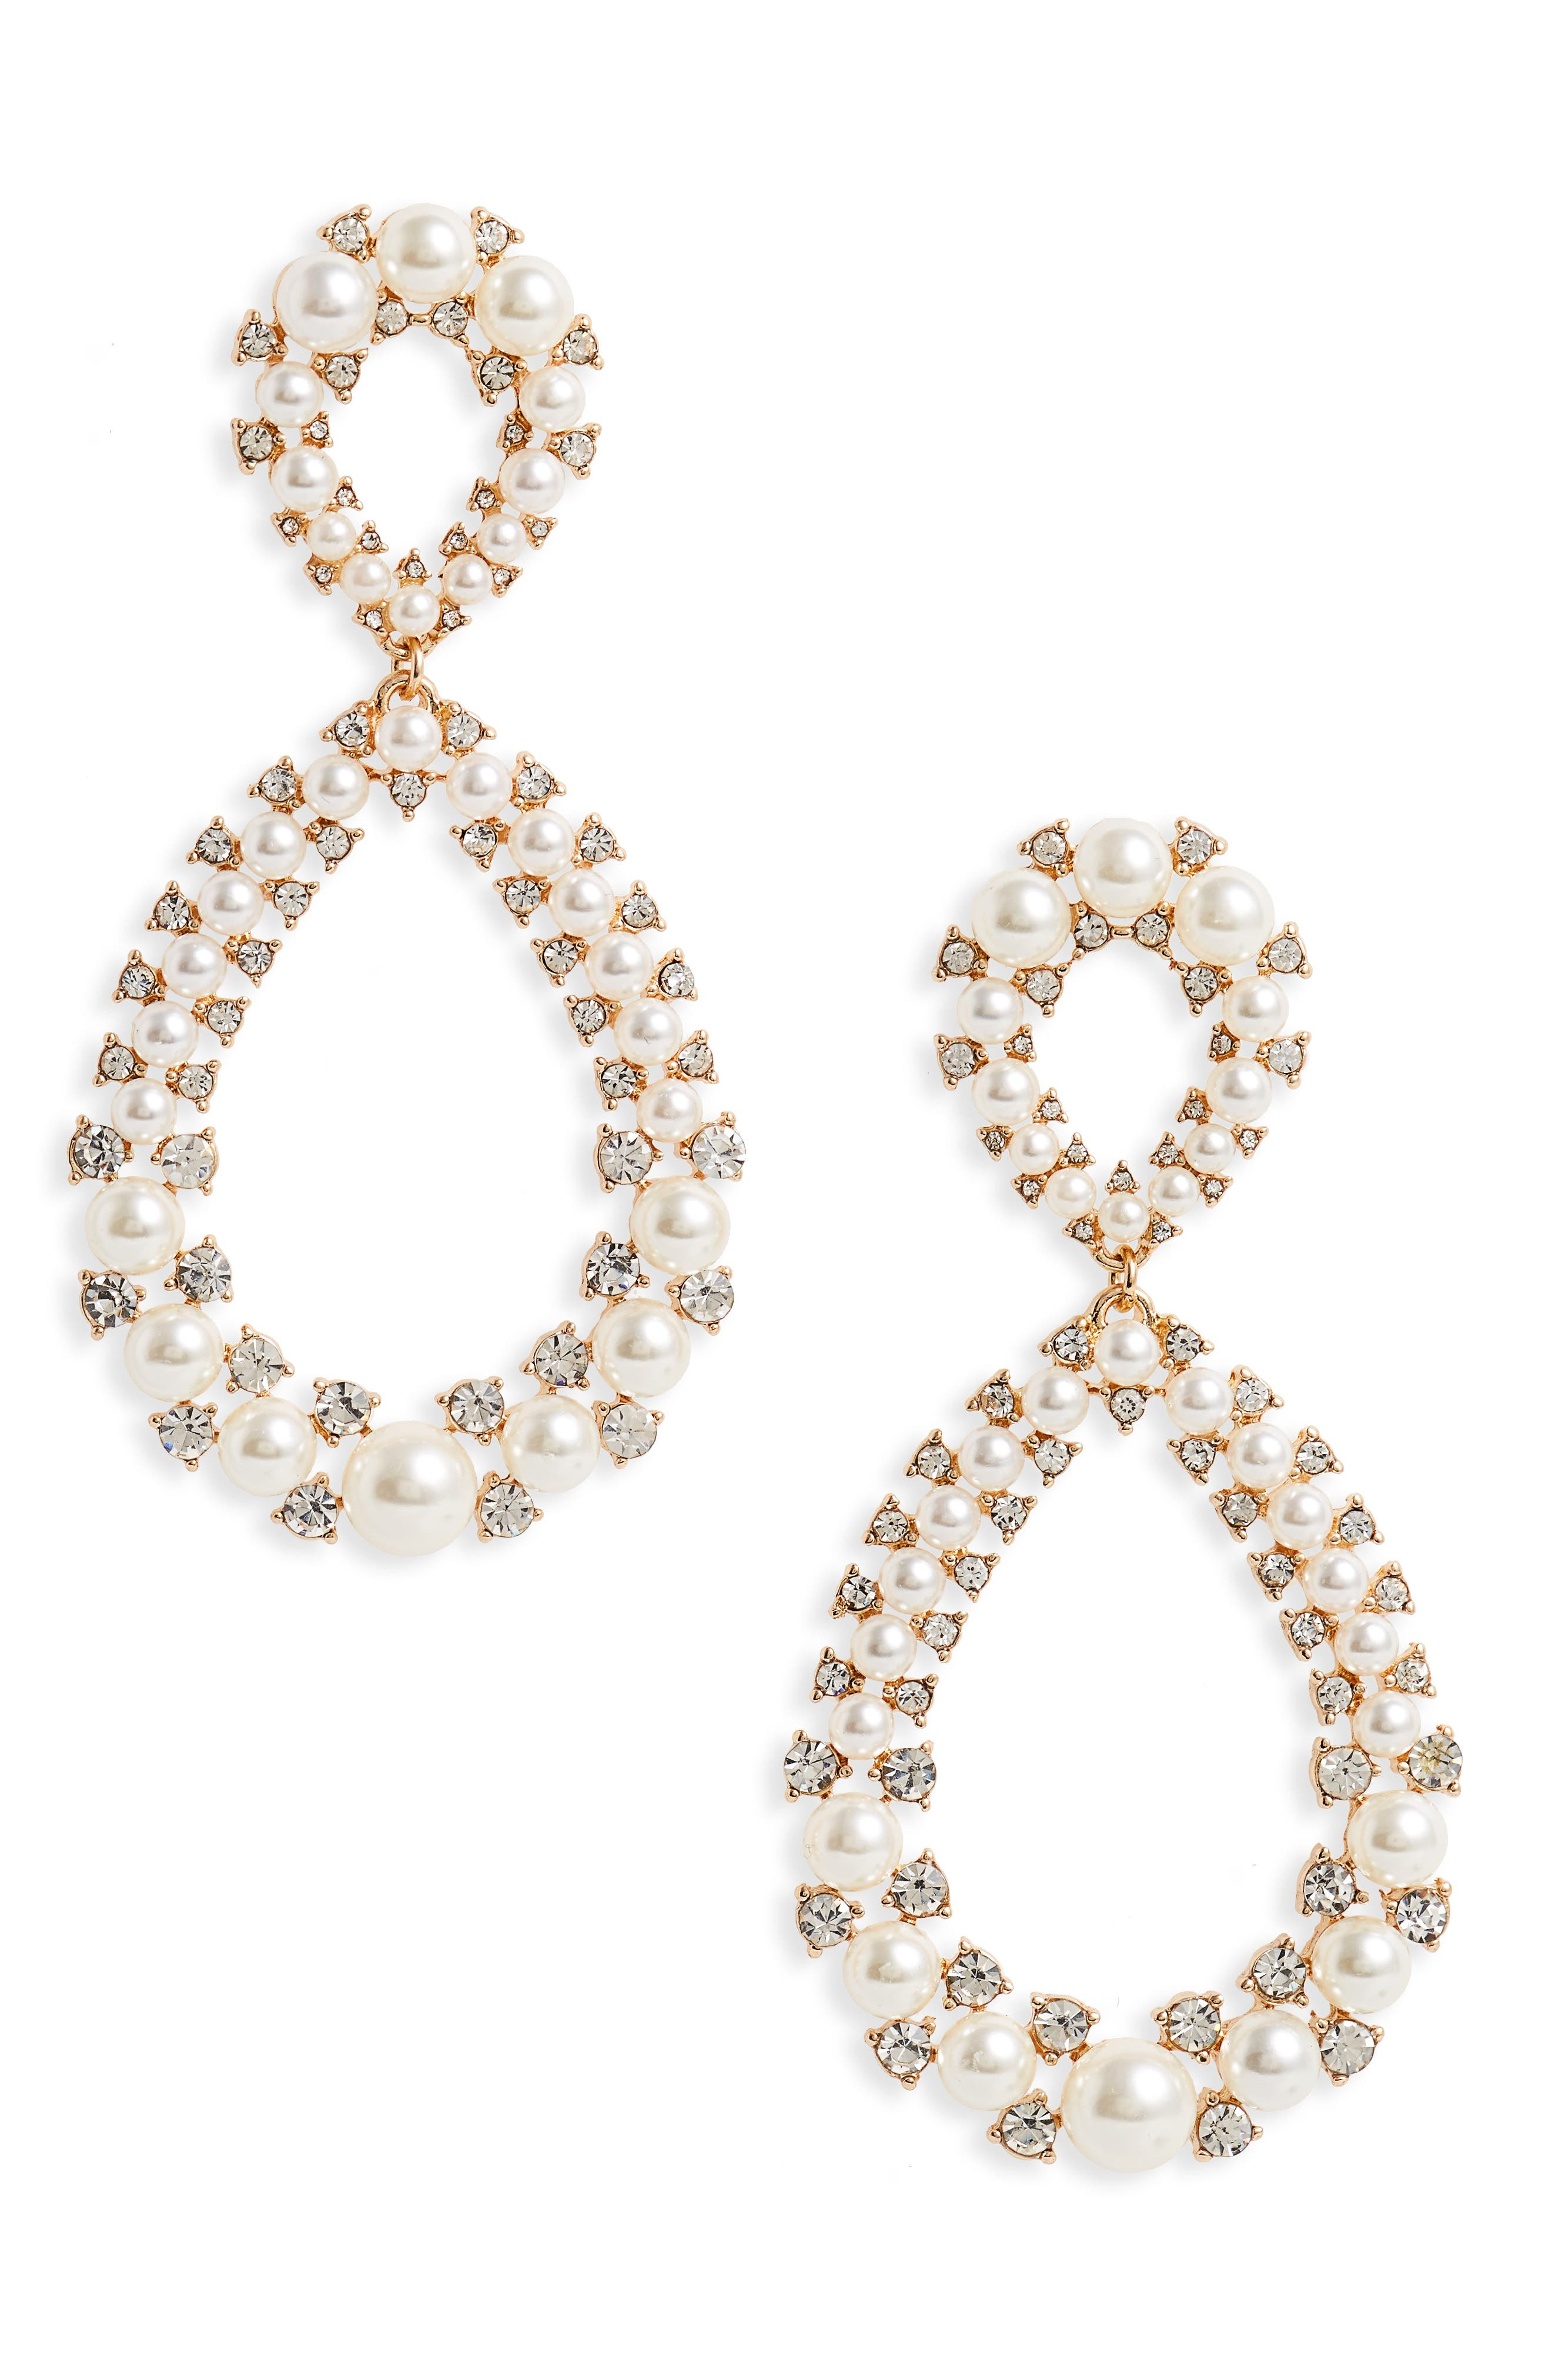 Imitation Pearl & Crystal Statement Earrings,                         Main,                         color, Crystal/ Pearl/ Gold